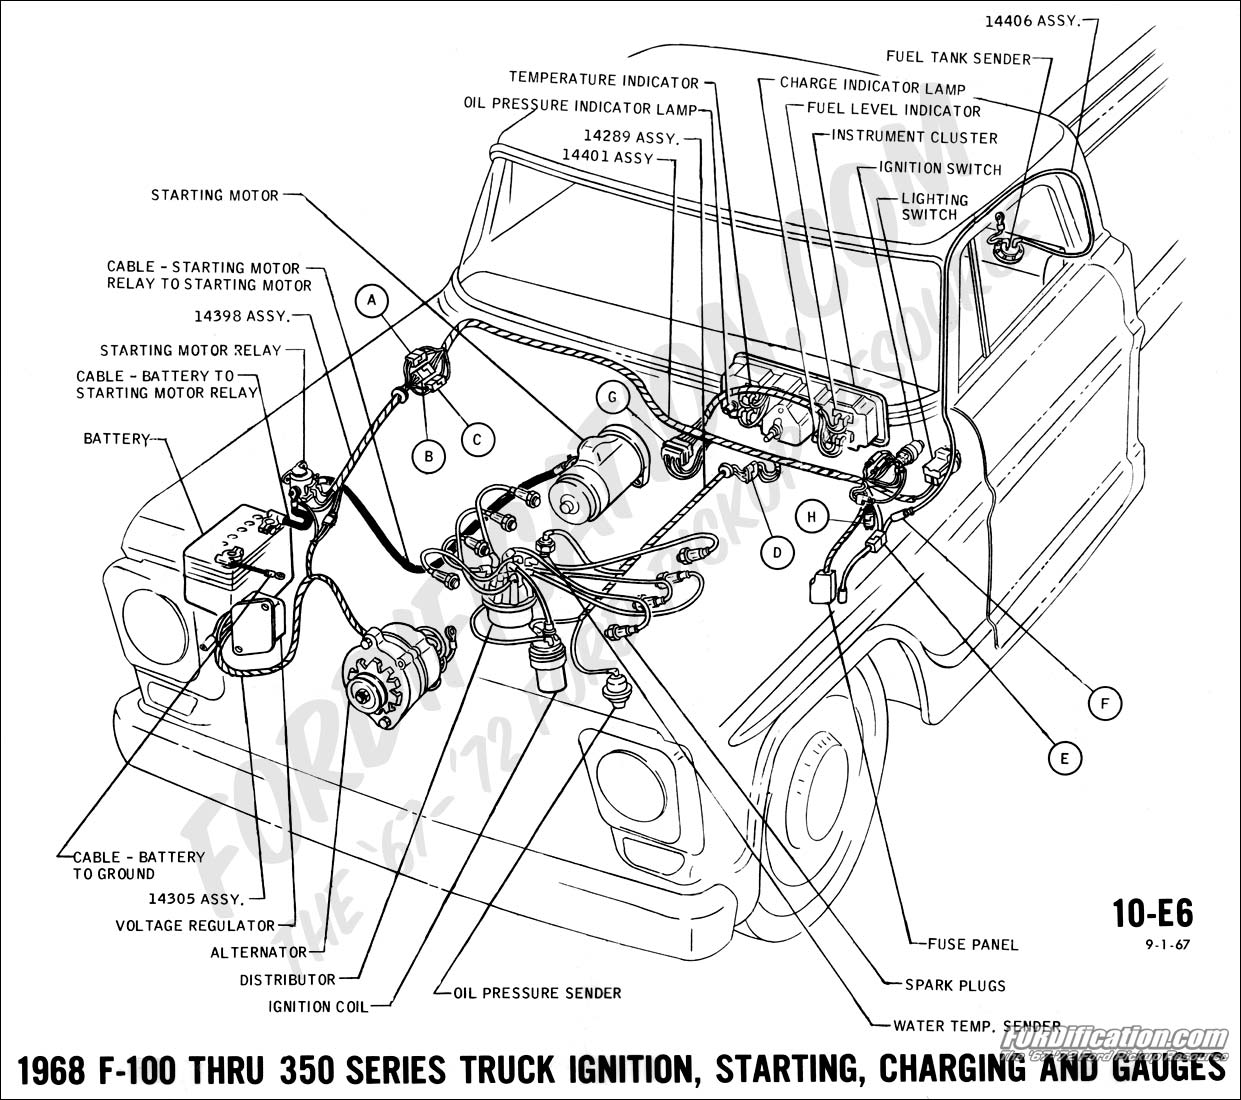 68 Mustang Dash Wiring Diagram Simple Guide About Ford Truck Technical Drawings And Schematics Section H